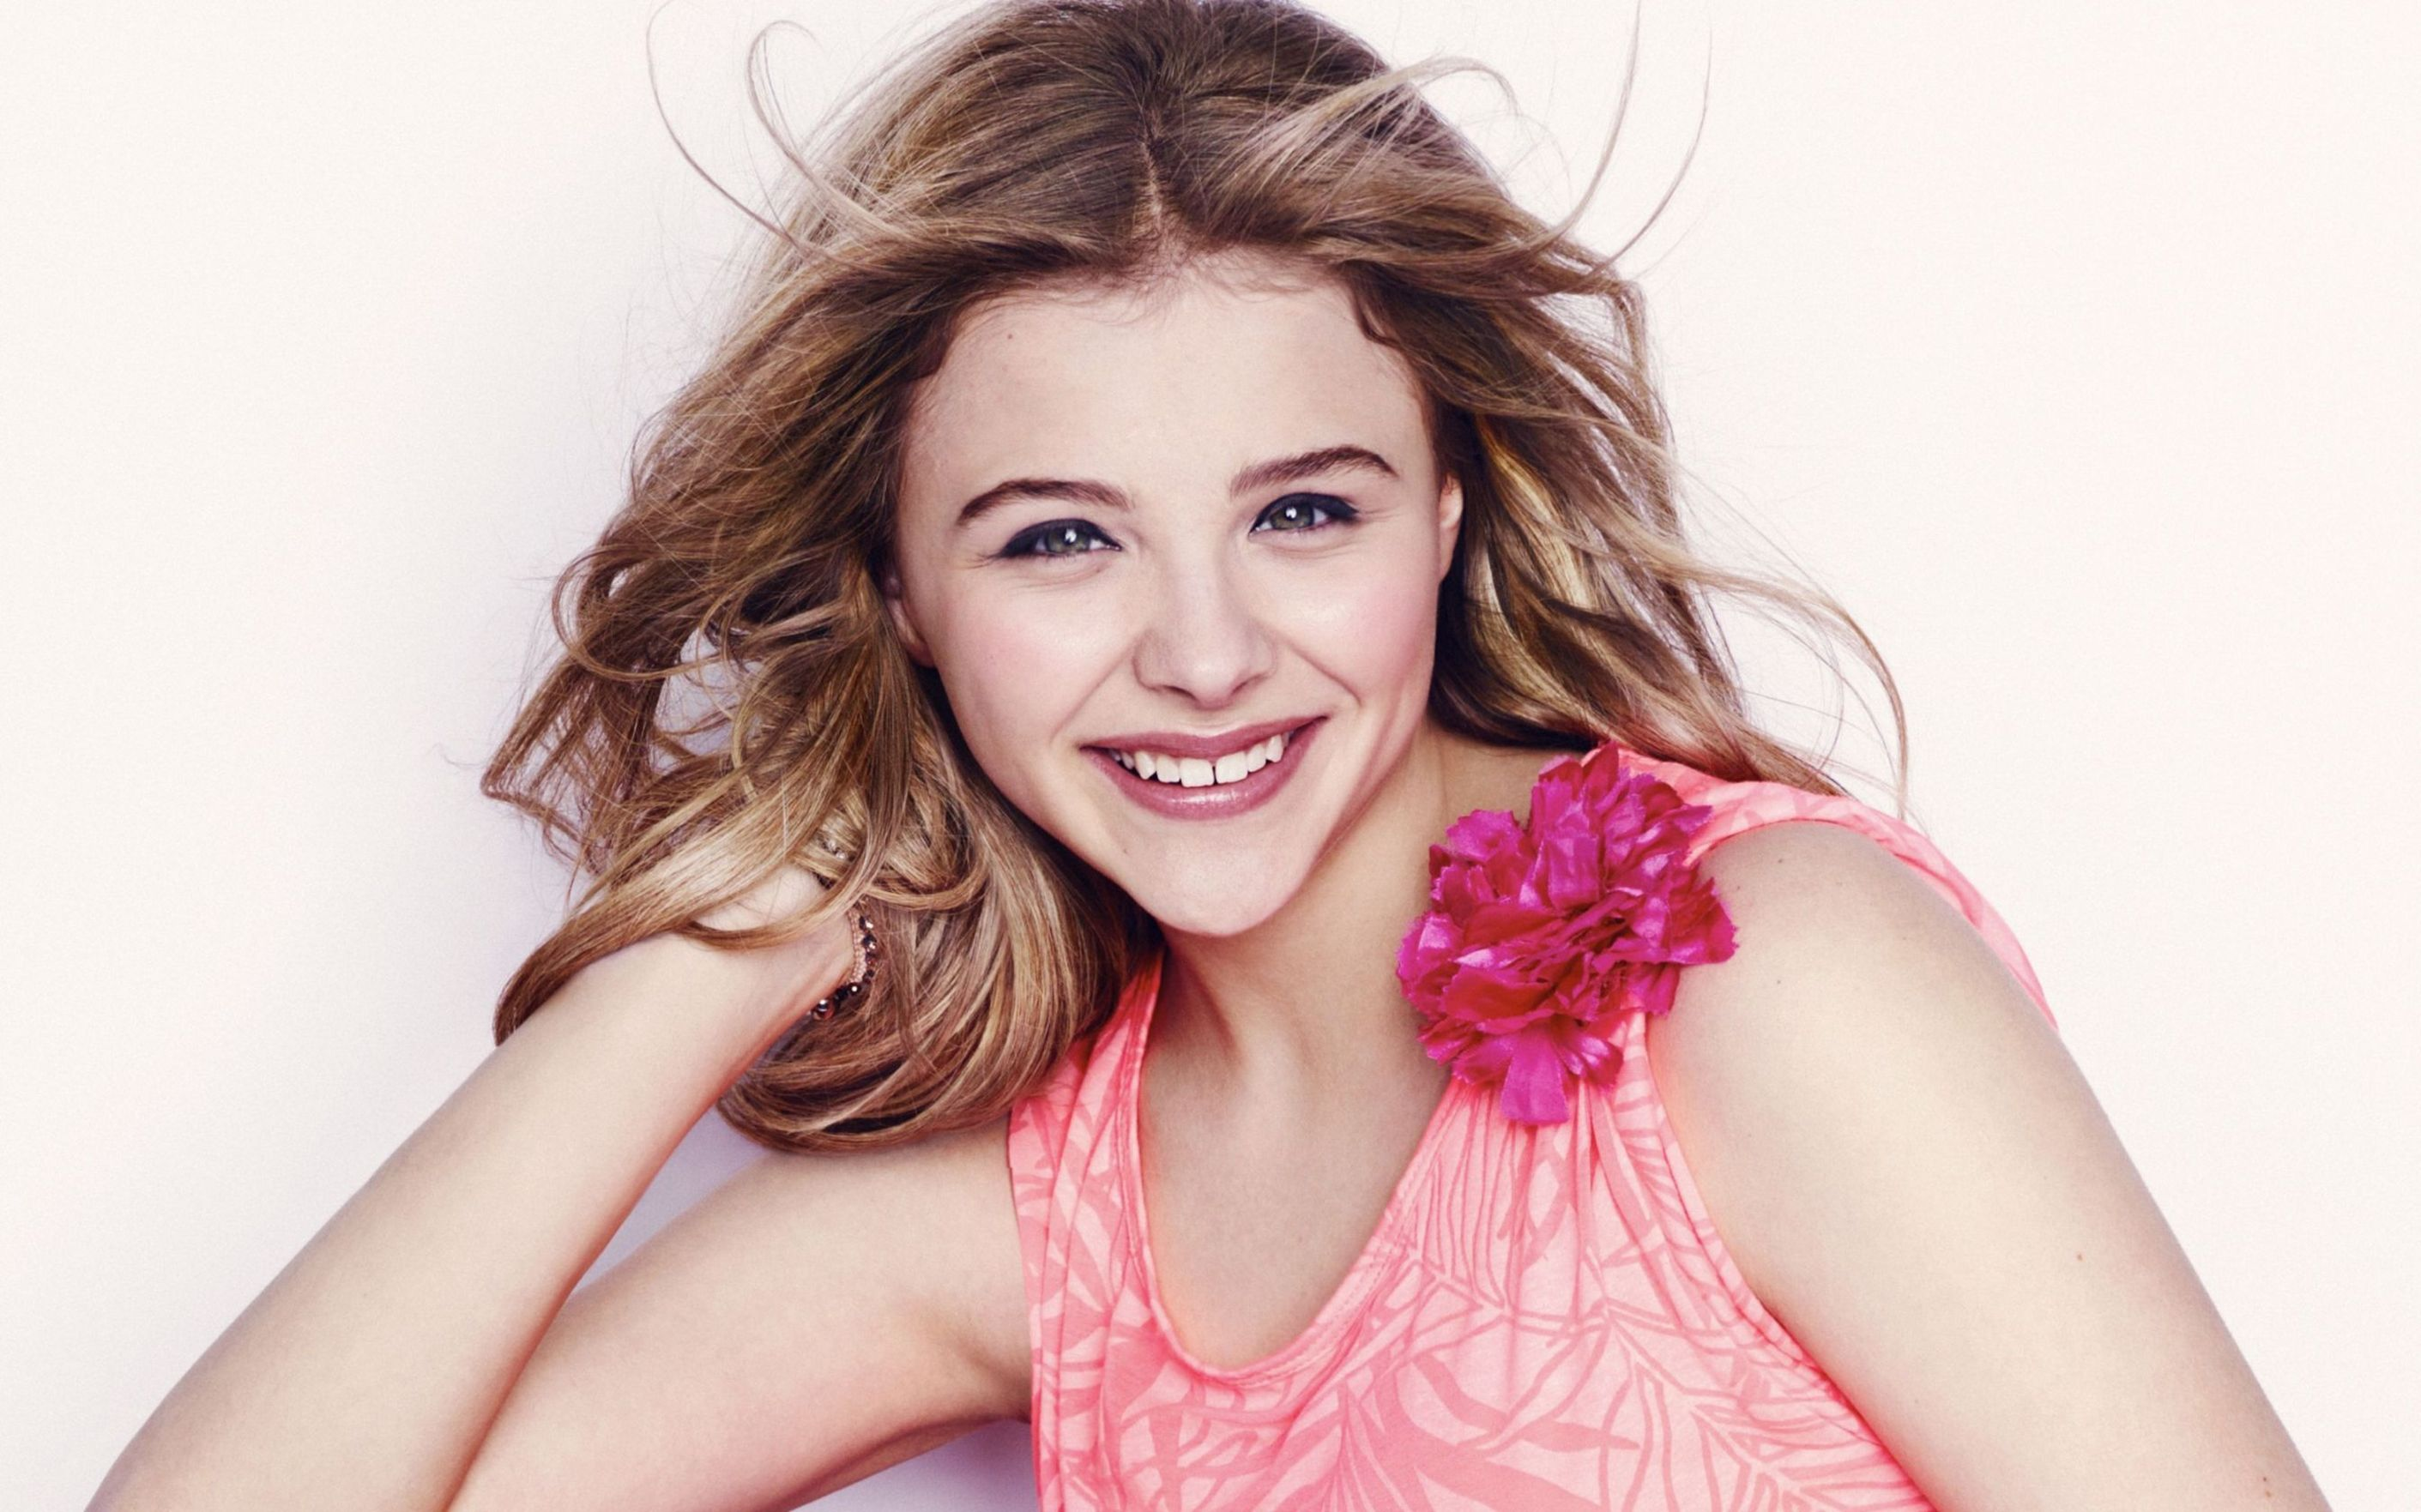 Download free HD Chloe Moretz Actress Wallpaper, image